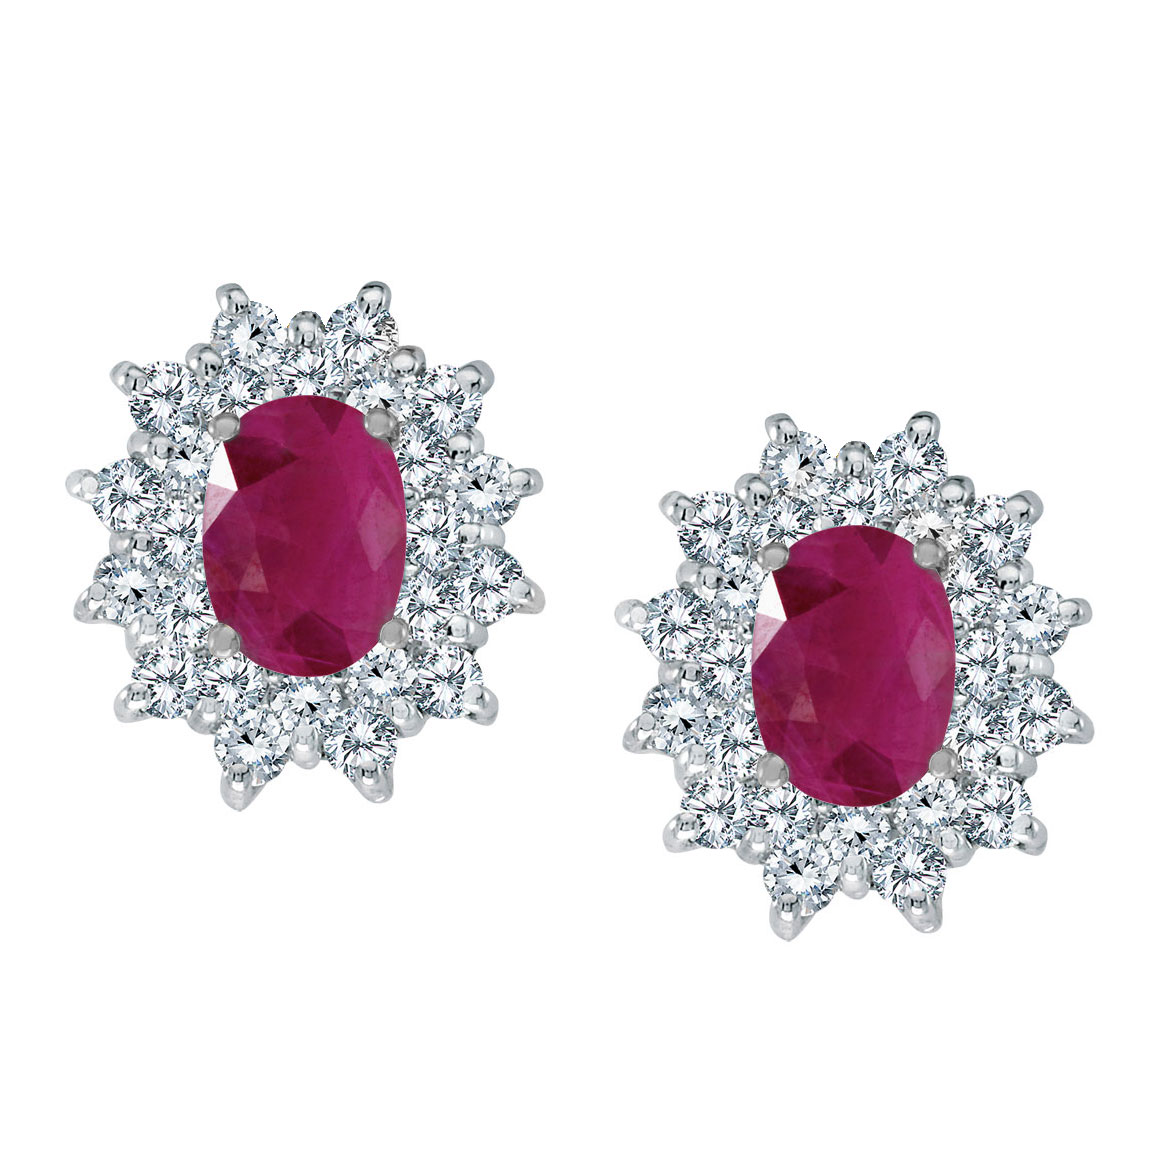 Bright 14k white gold earrings featuring 7x5 mm rubies surrounded by 1.00 total carat of scintill...